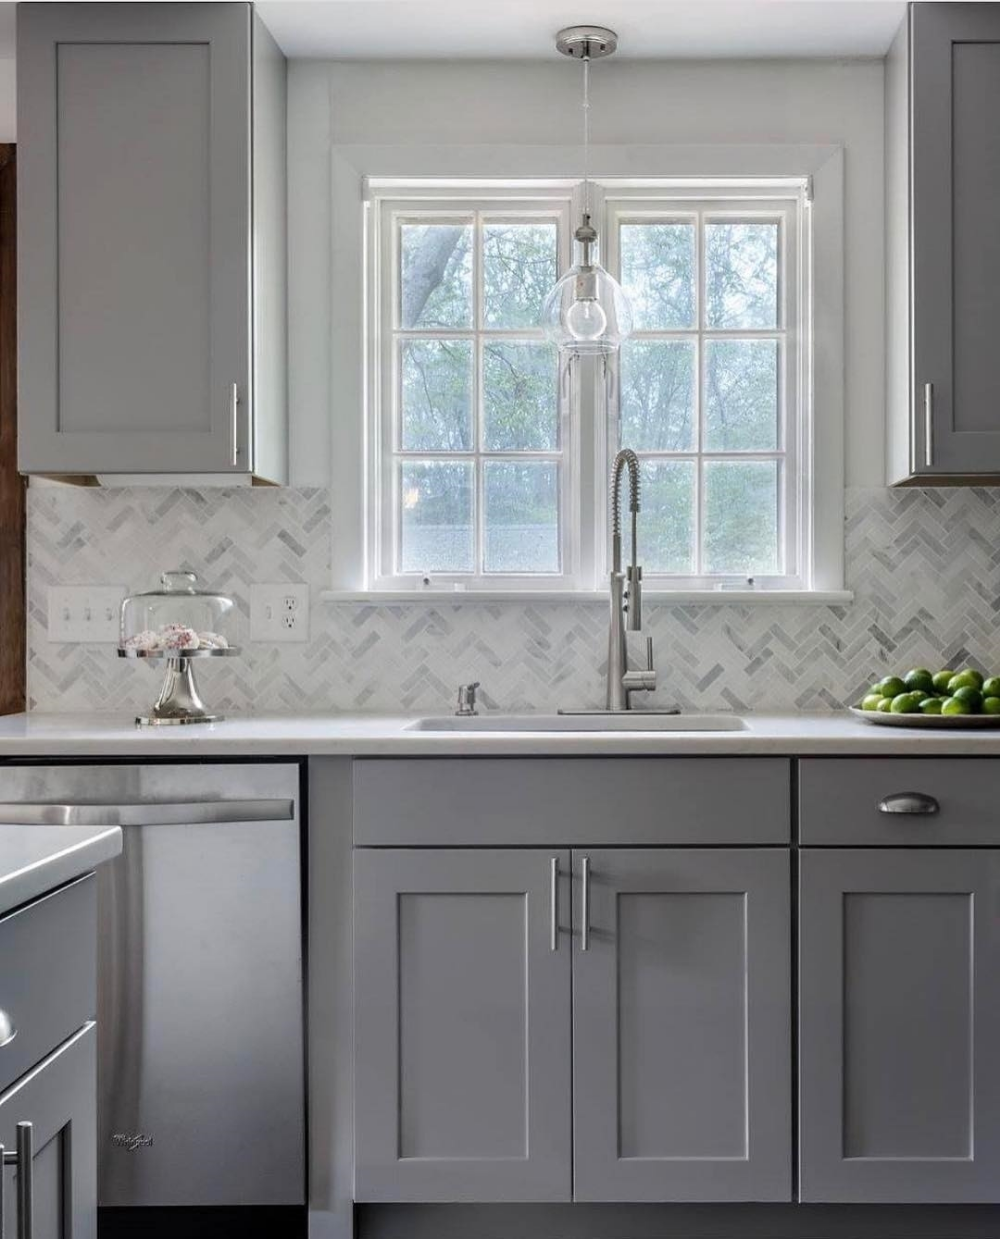 - White Walls, Gray Cabinets, Gray And White Backsplash